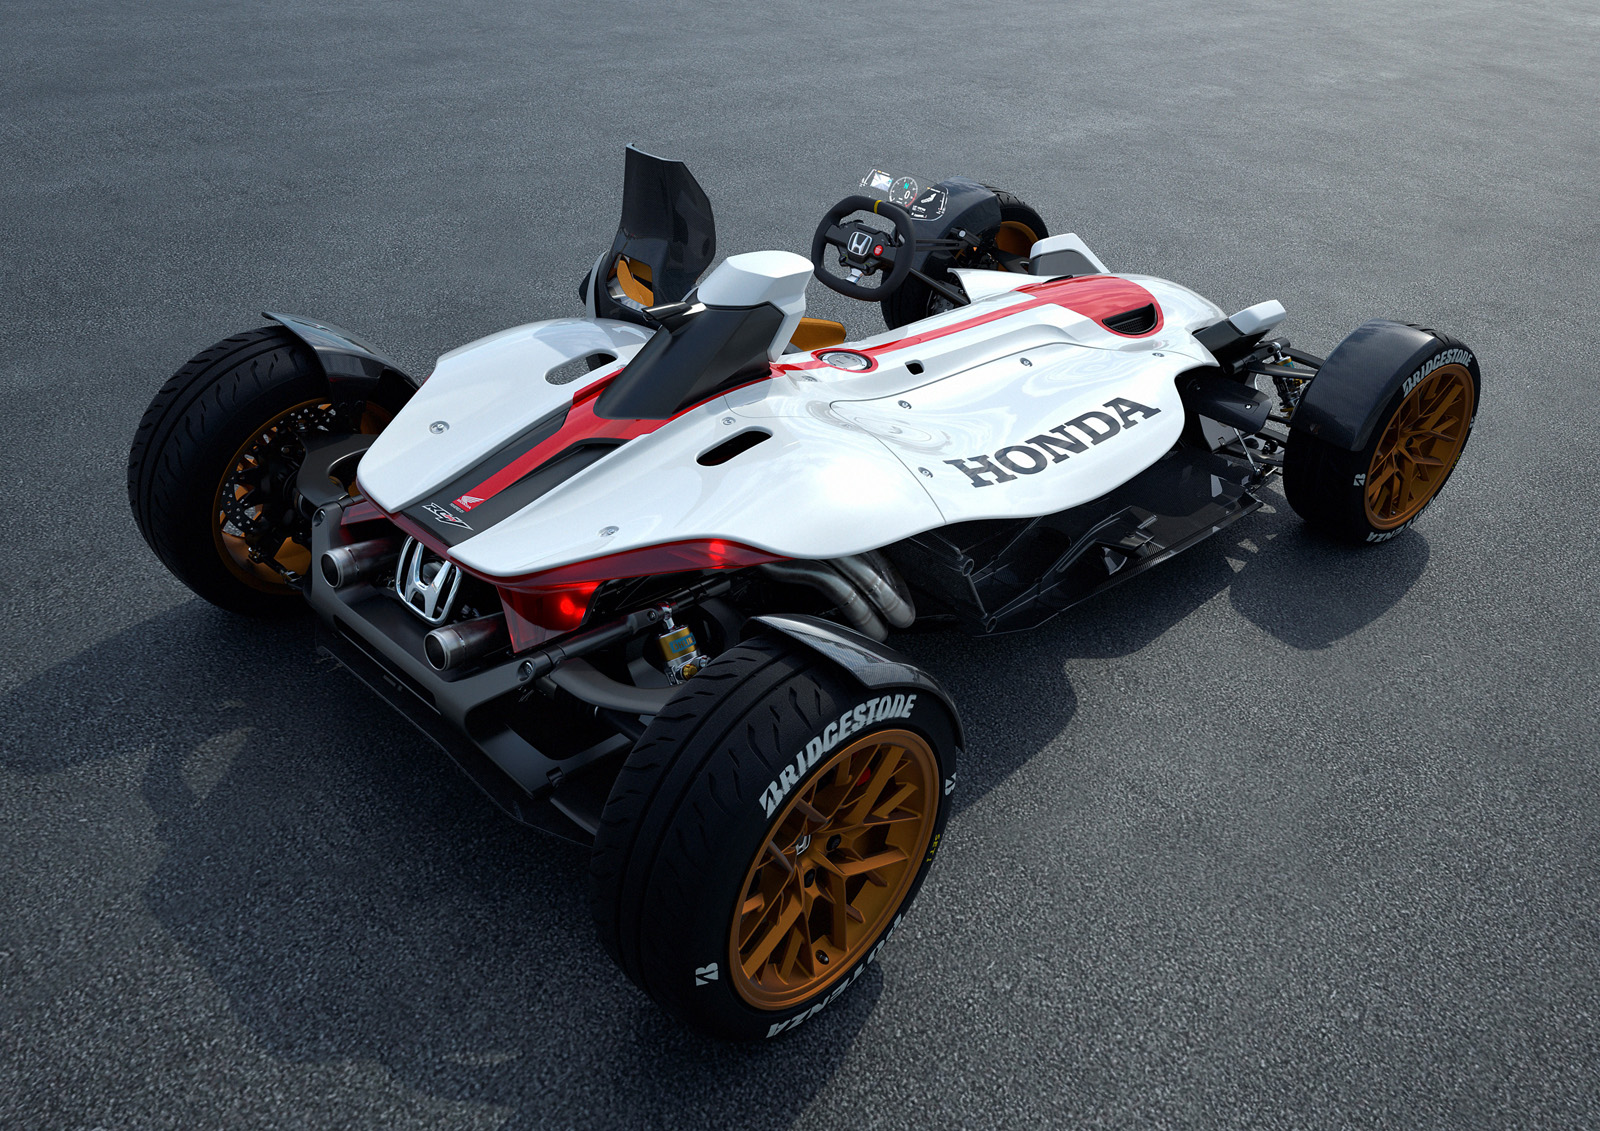 This Wild New Honda Uses A Motorcycle Engine And Revs To 13 000 Rpm